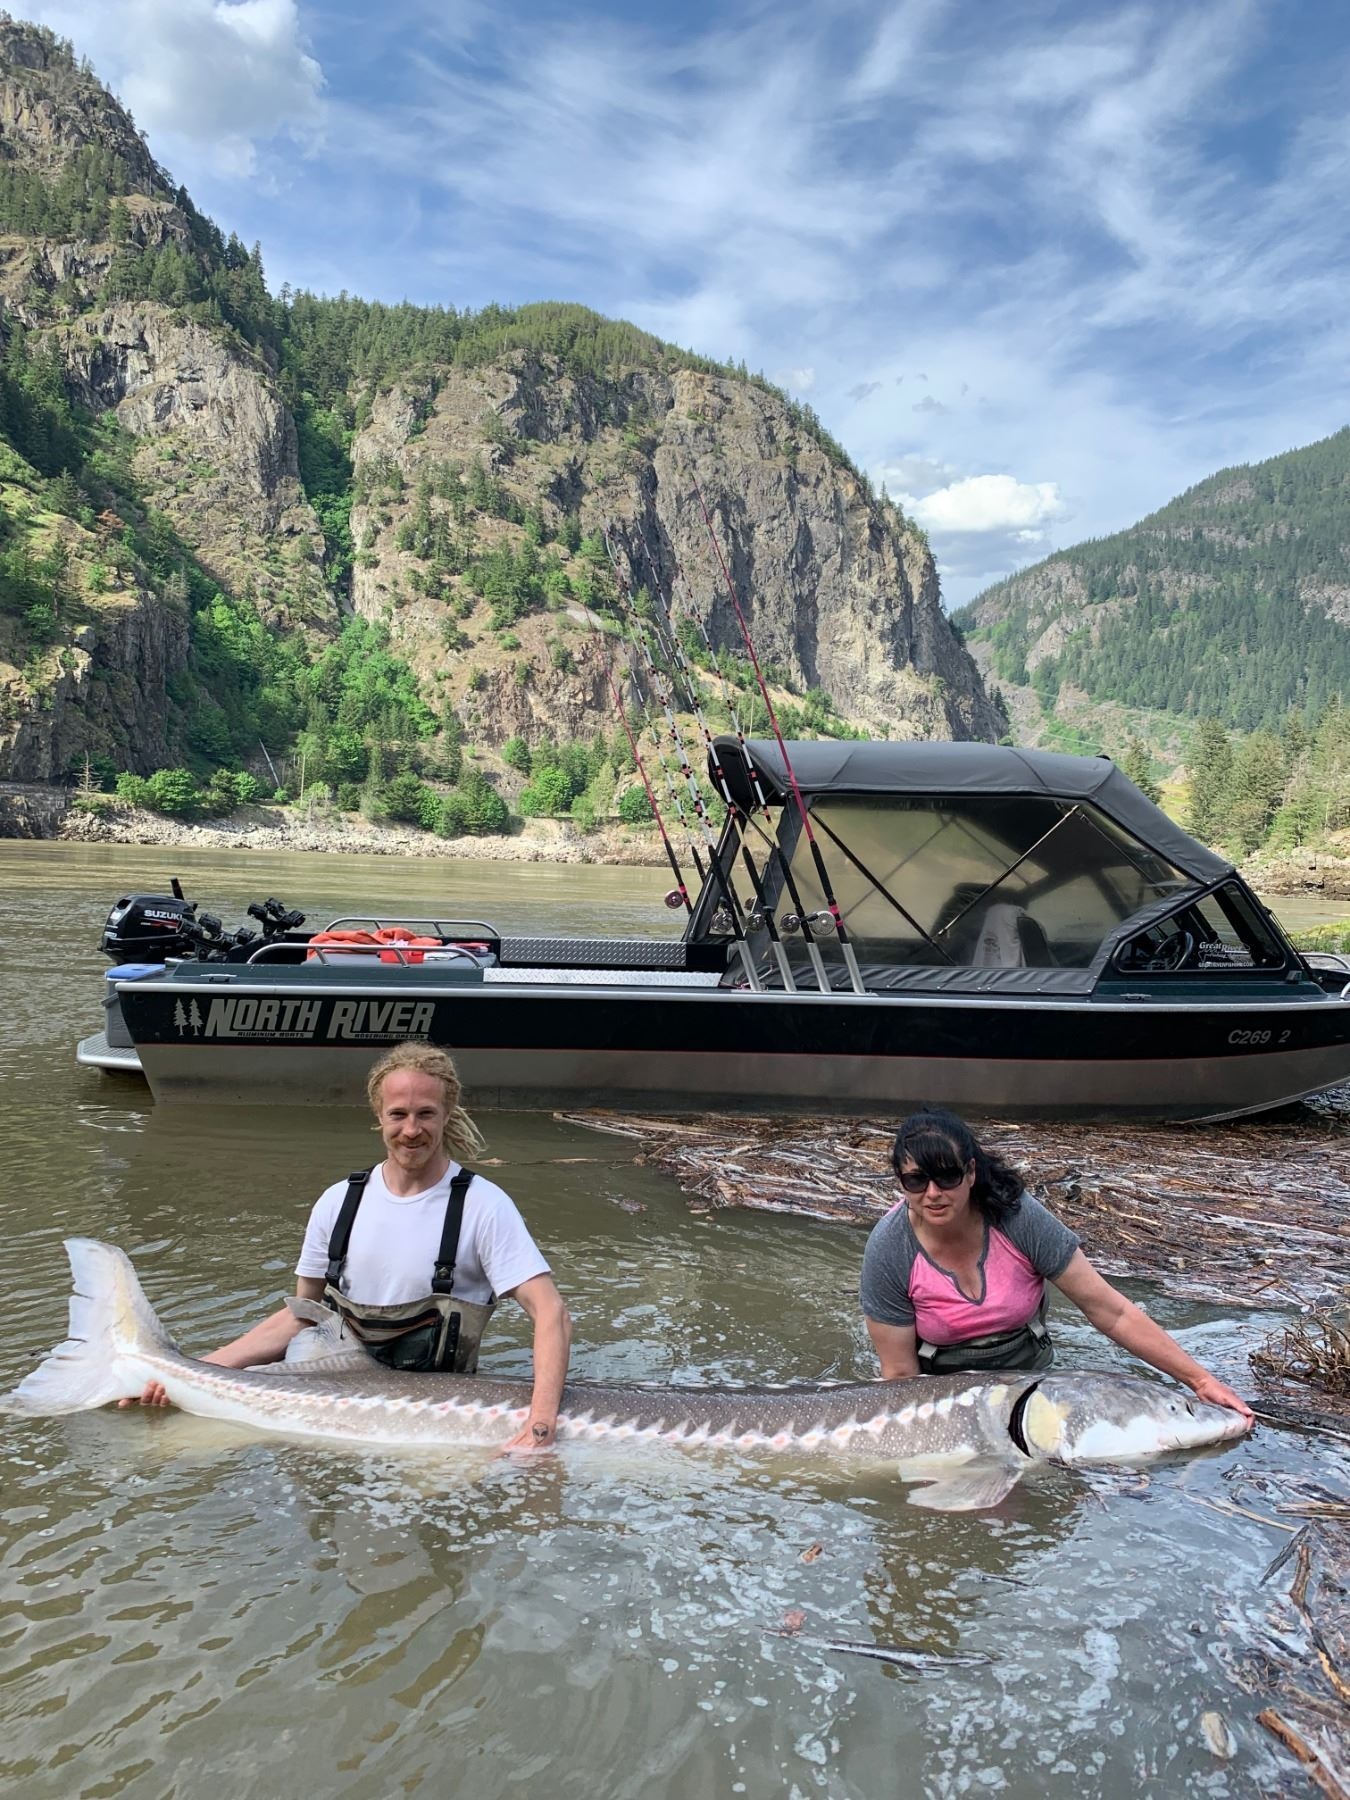 1-DAY (8 hour) BIG GAME ULTIMATE FRASER CANYON STURGEON EXPERIENCE FOR 2 PEOPLE